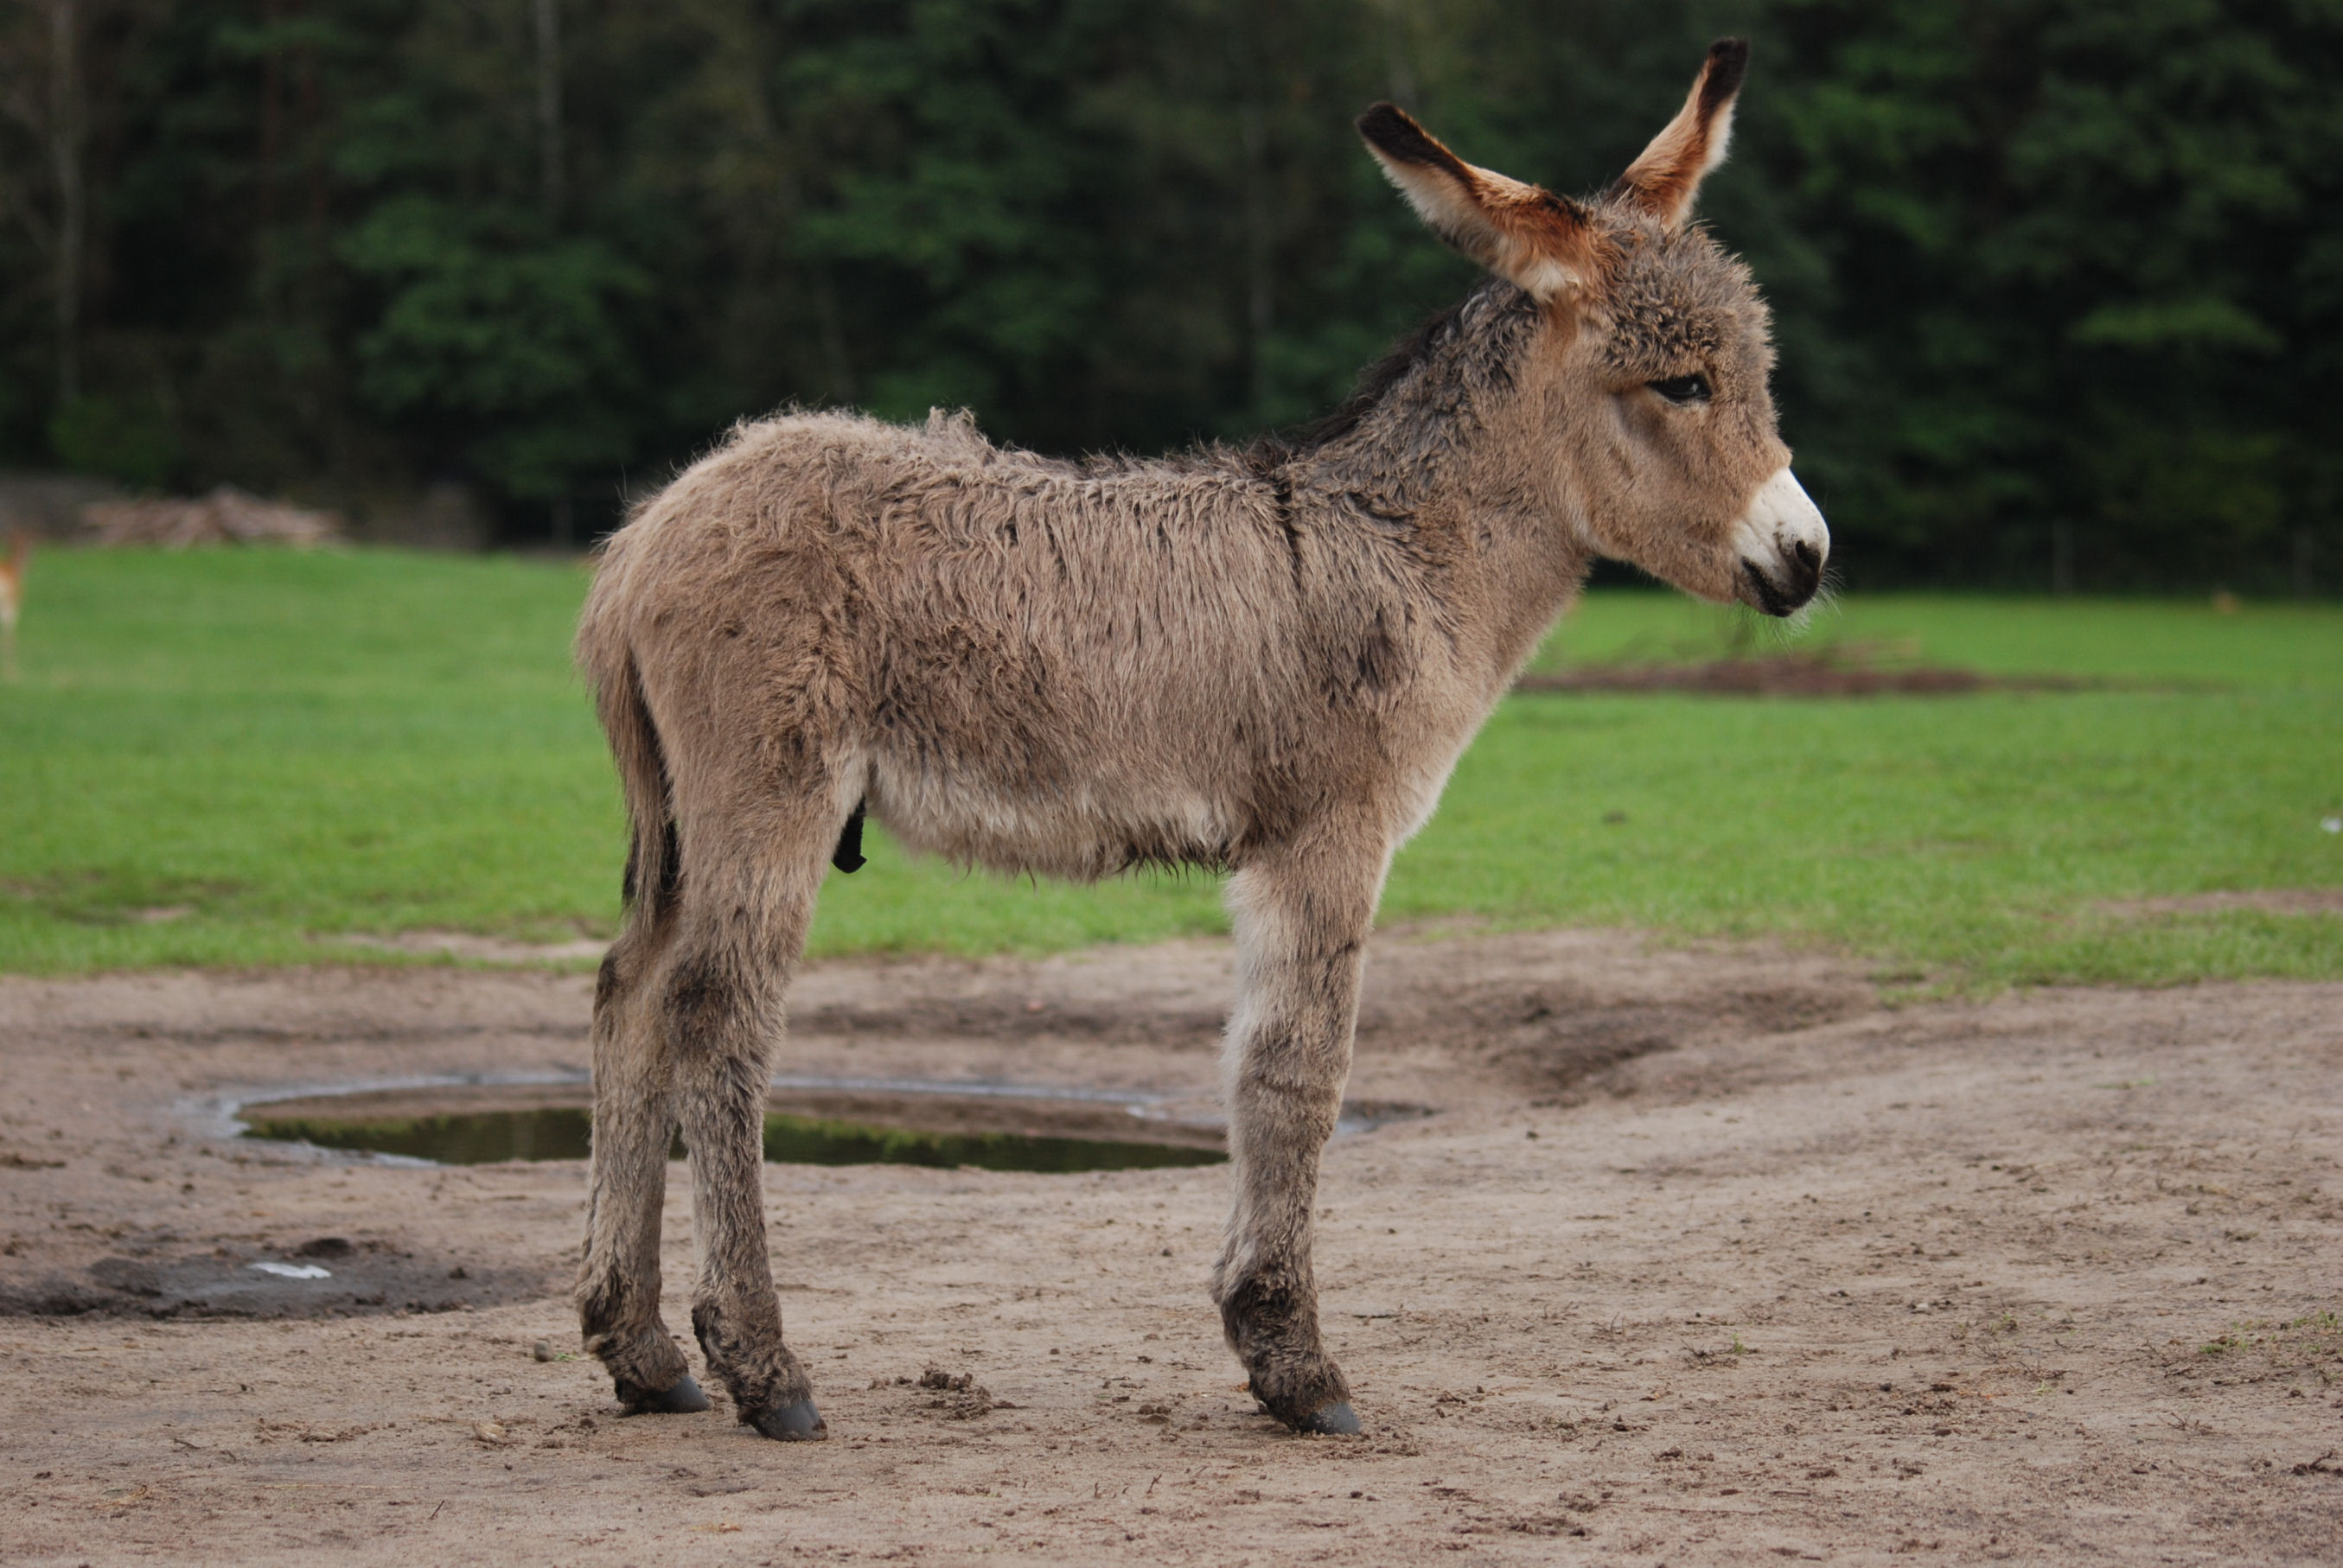 Difference Between a Donkey and a Burro